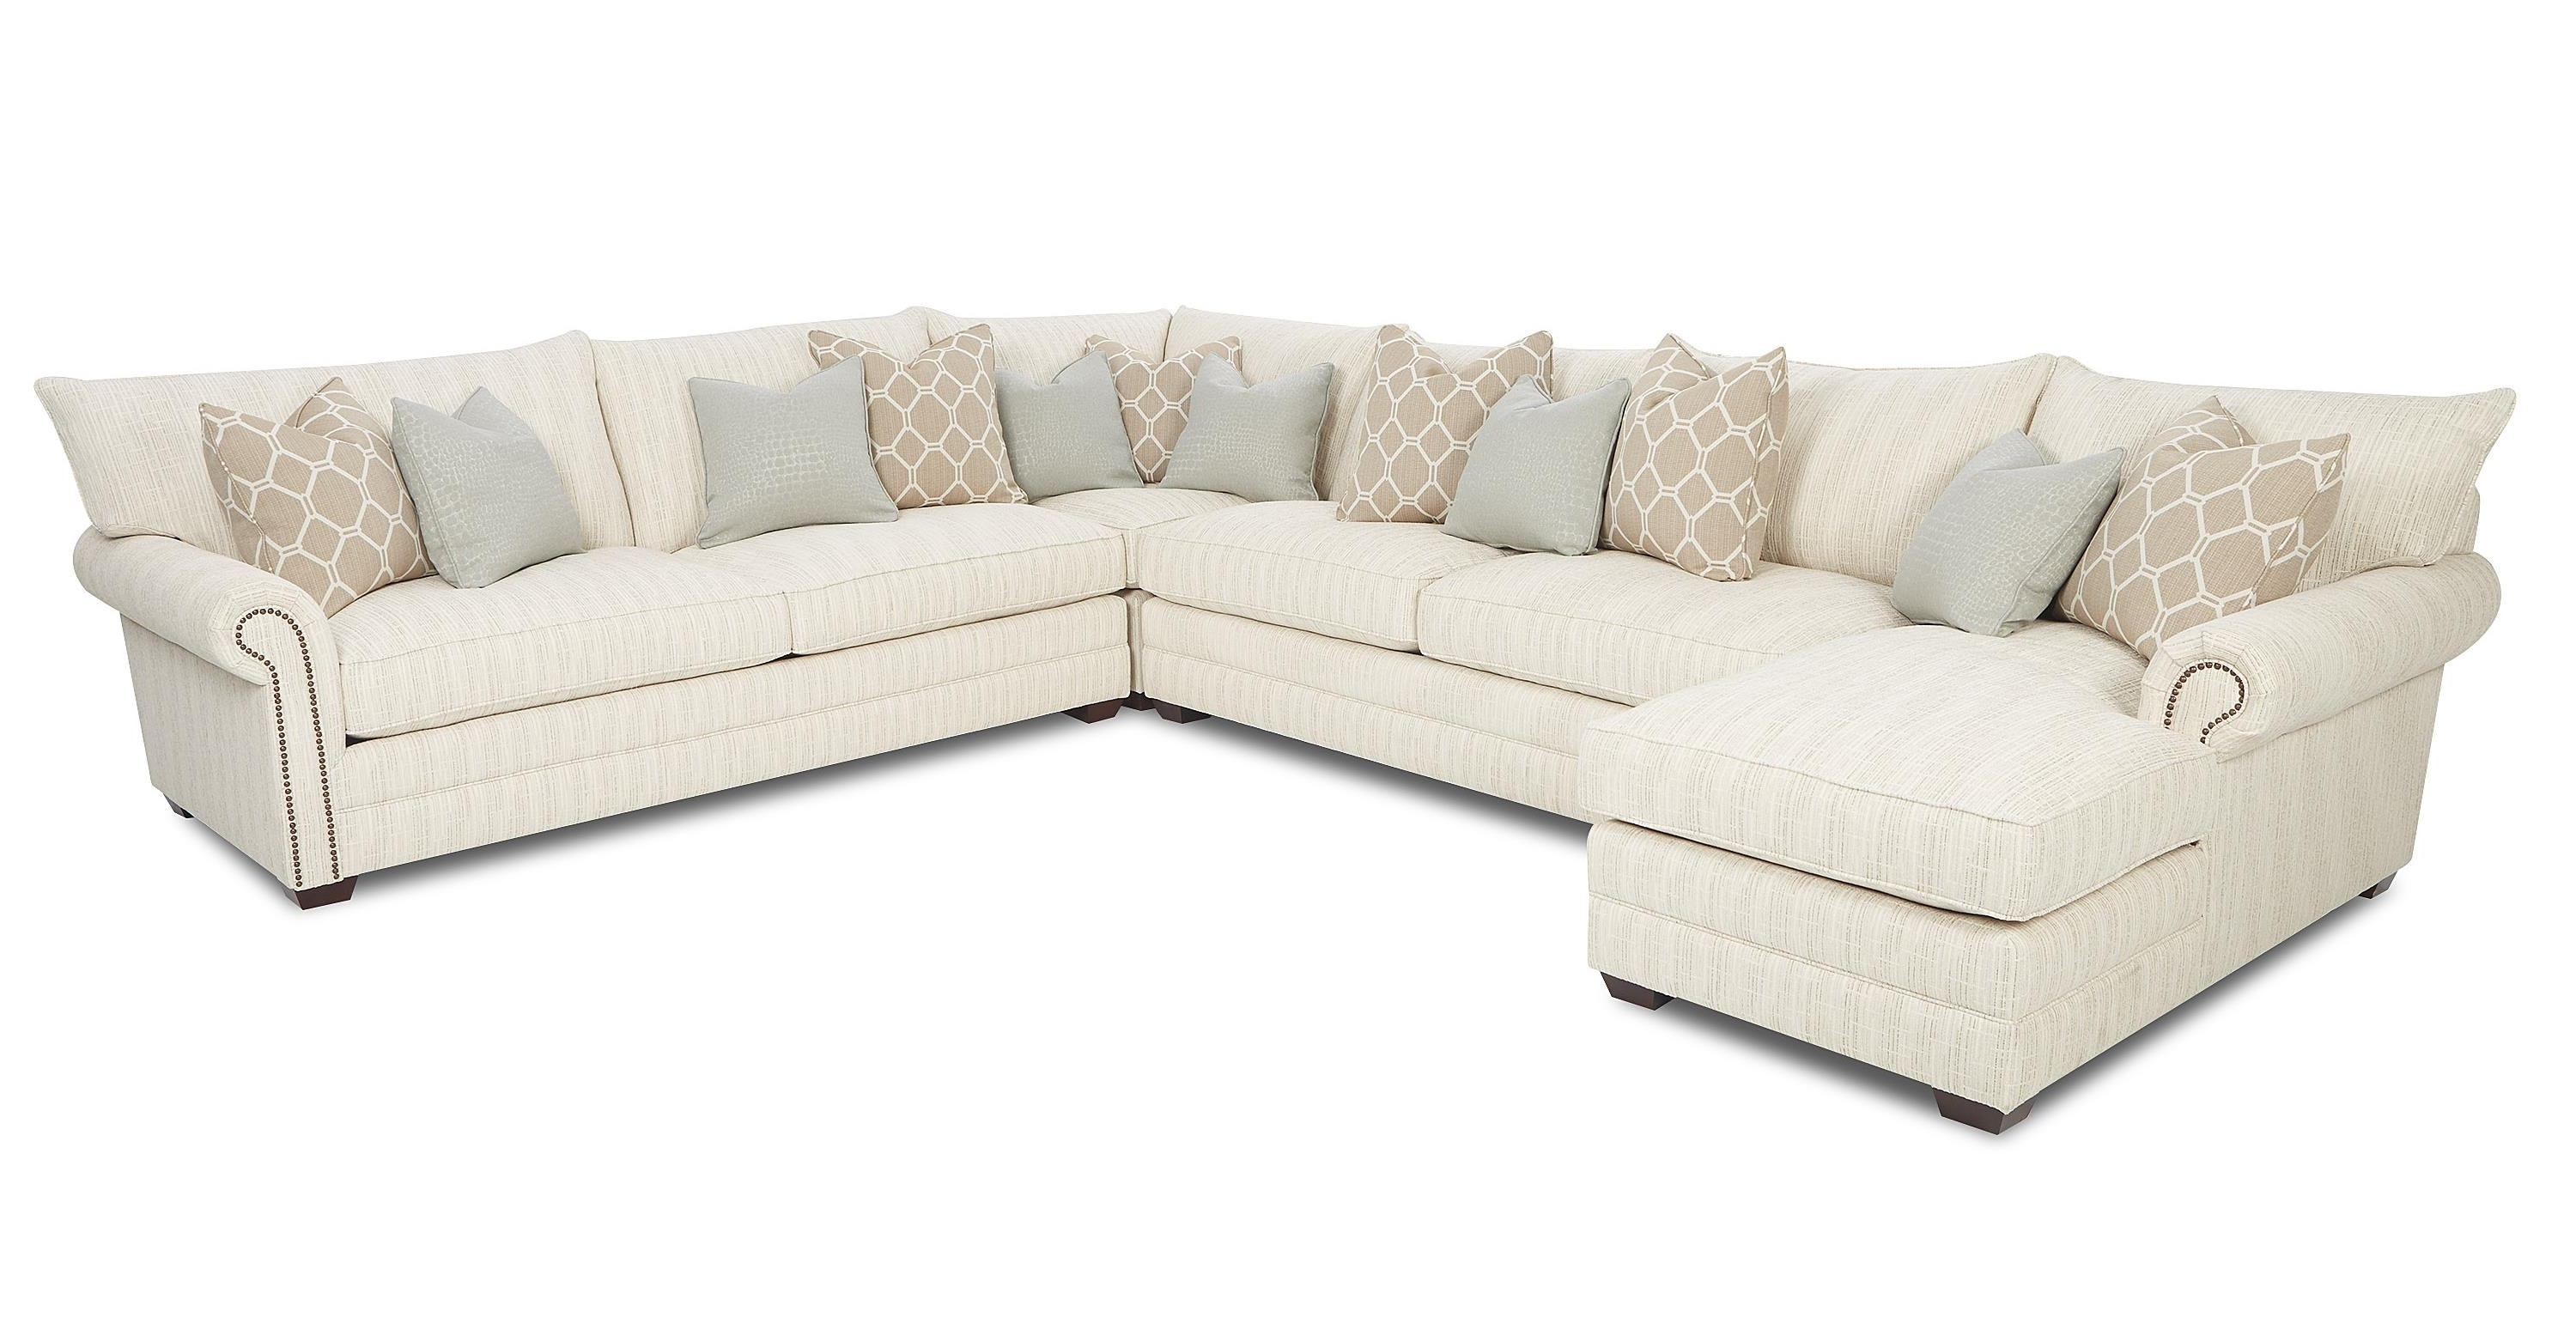 Most Popular Sectional Sofas With Nailhead Trim Within Traditional Sectional Sofa With Nailhead Trim And Chaise Lounge (View 2 of 15)